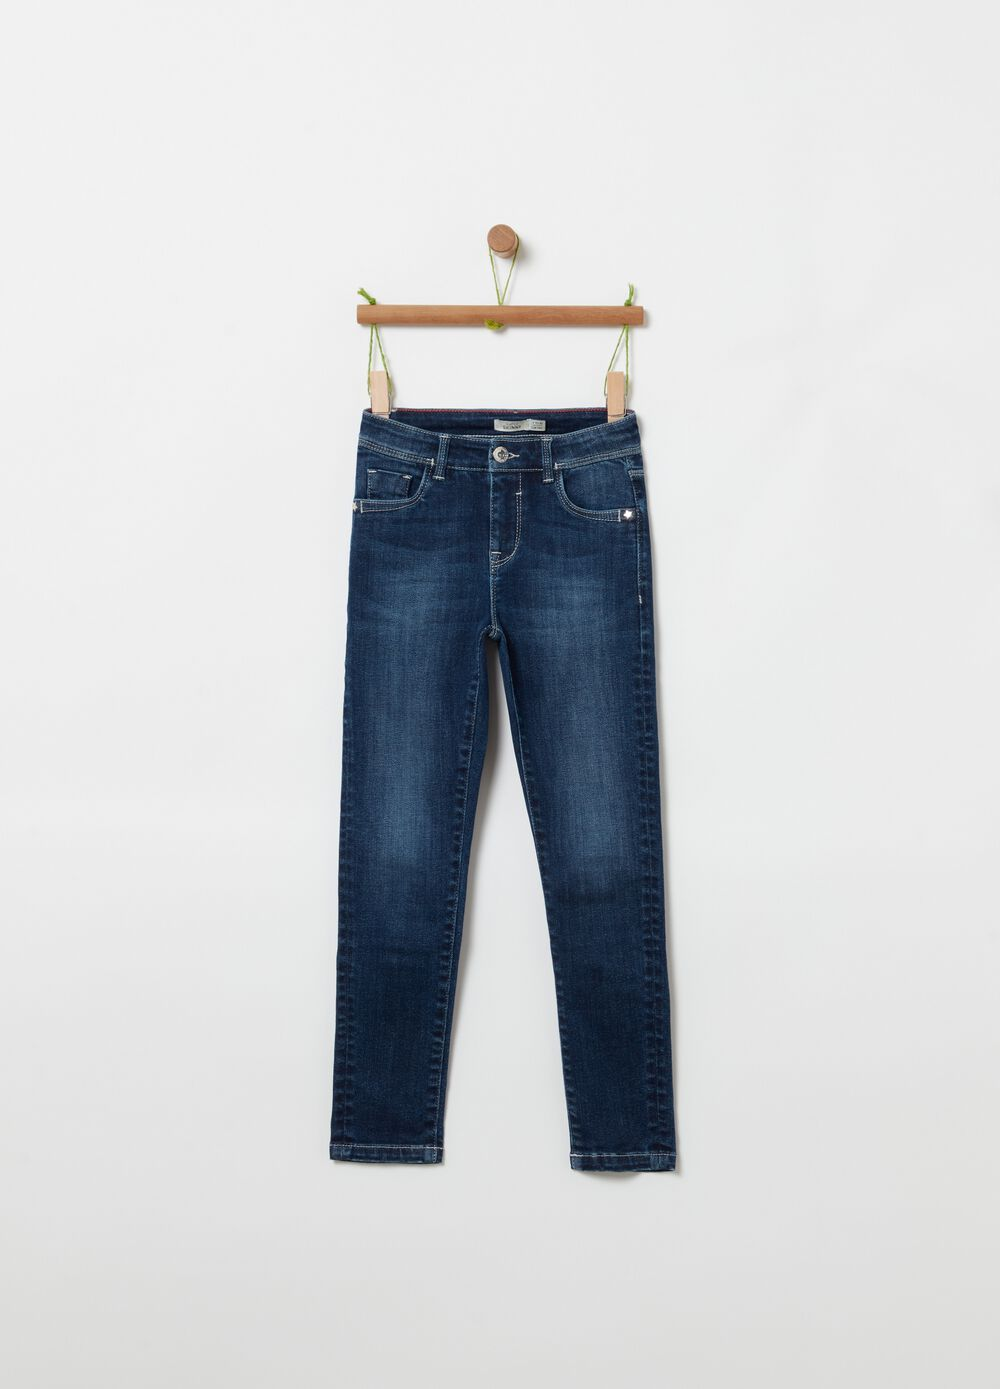 Misdyed-effect stretch jeans